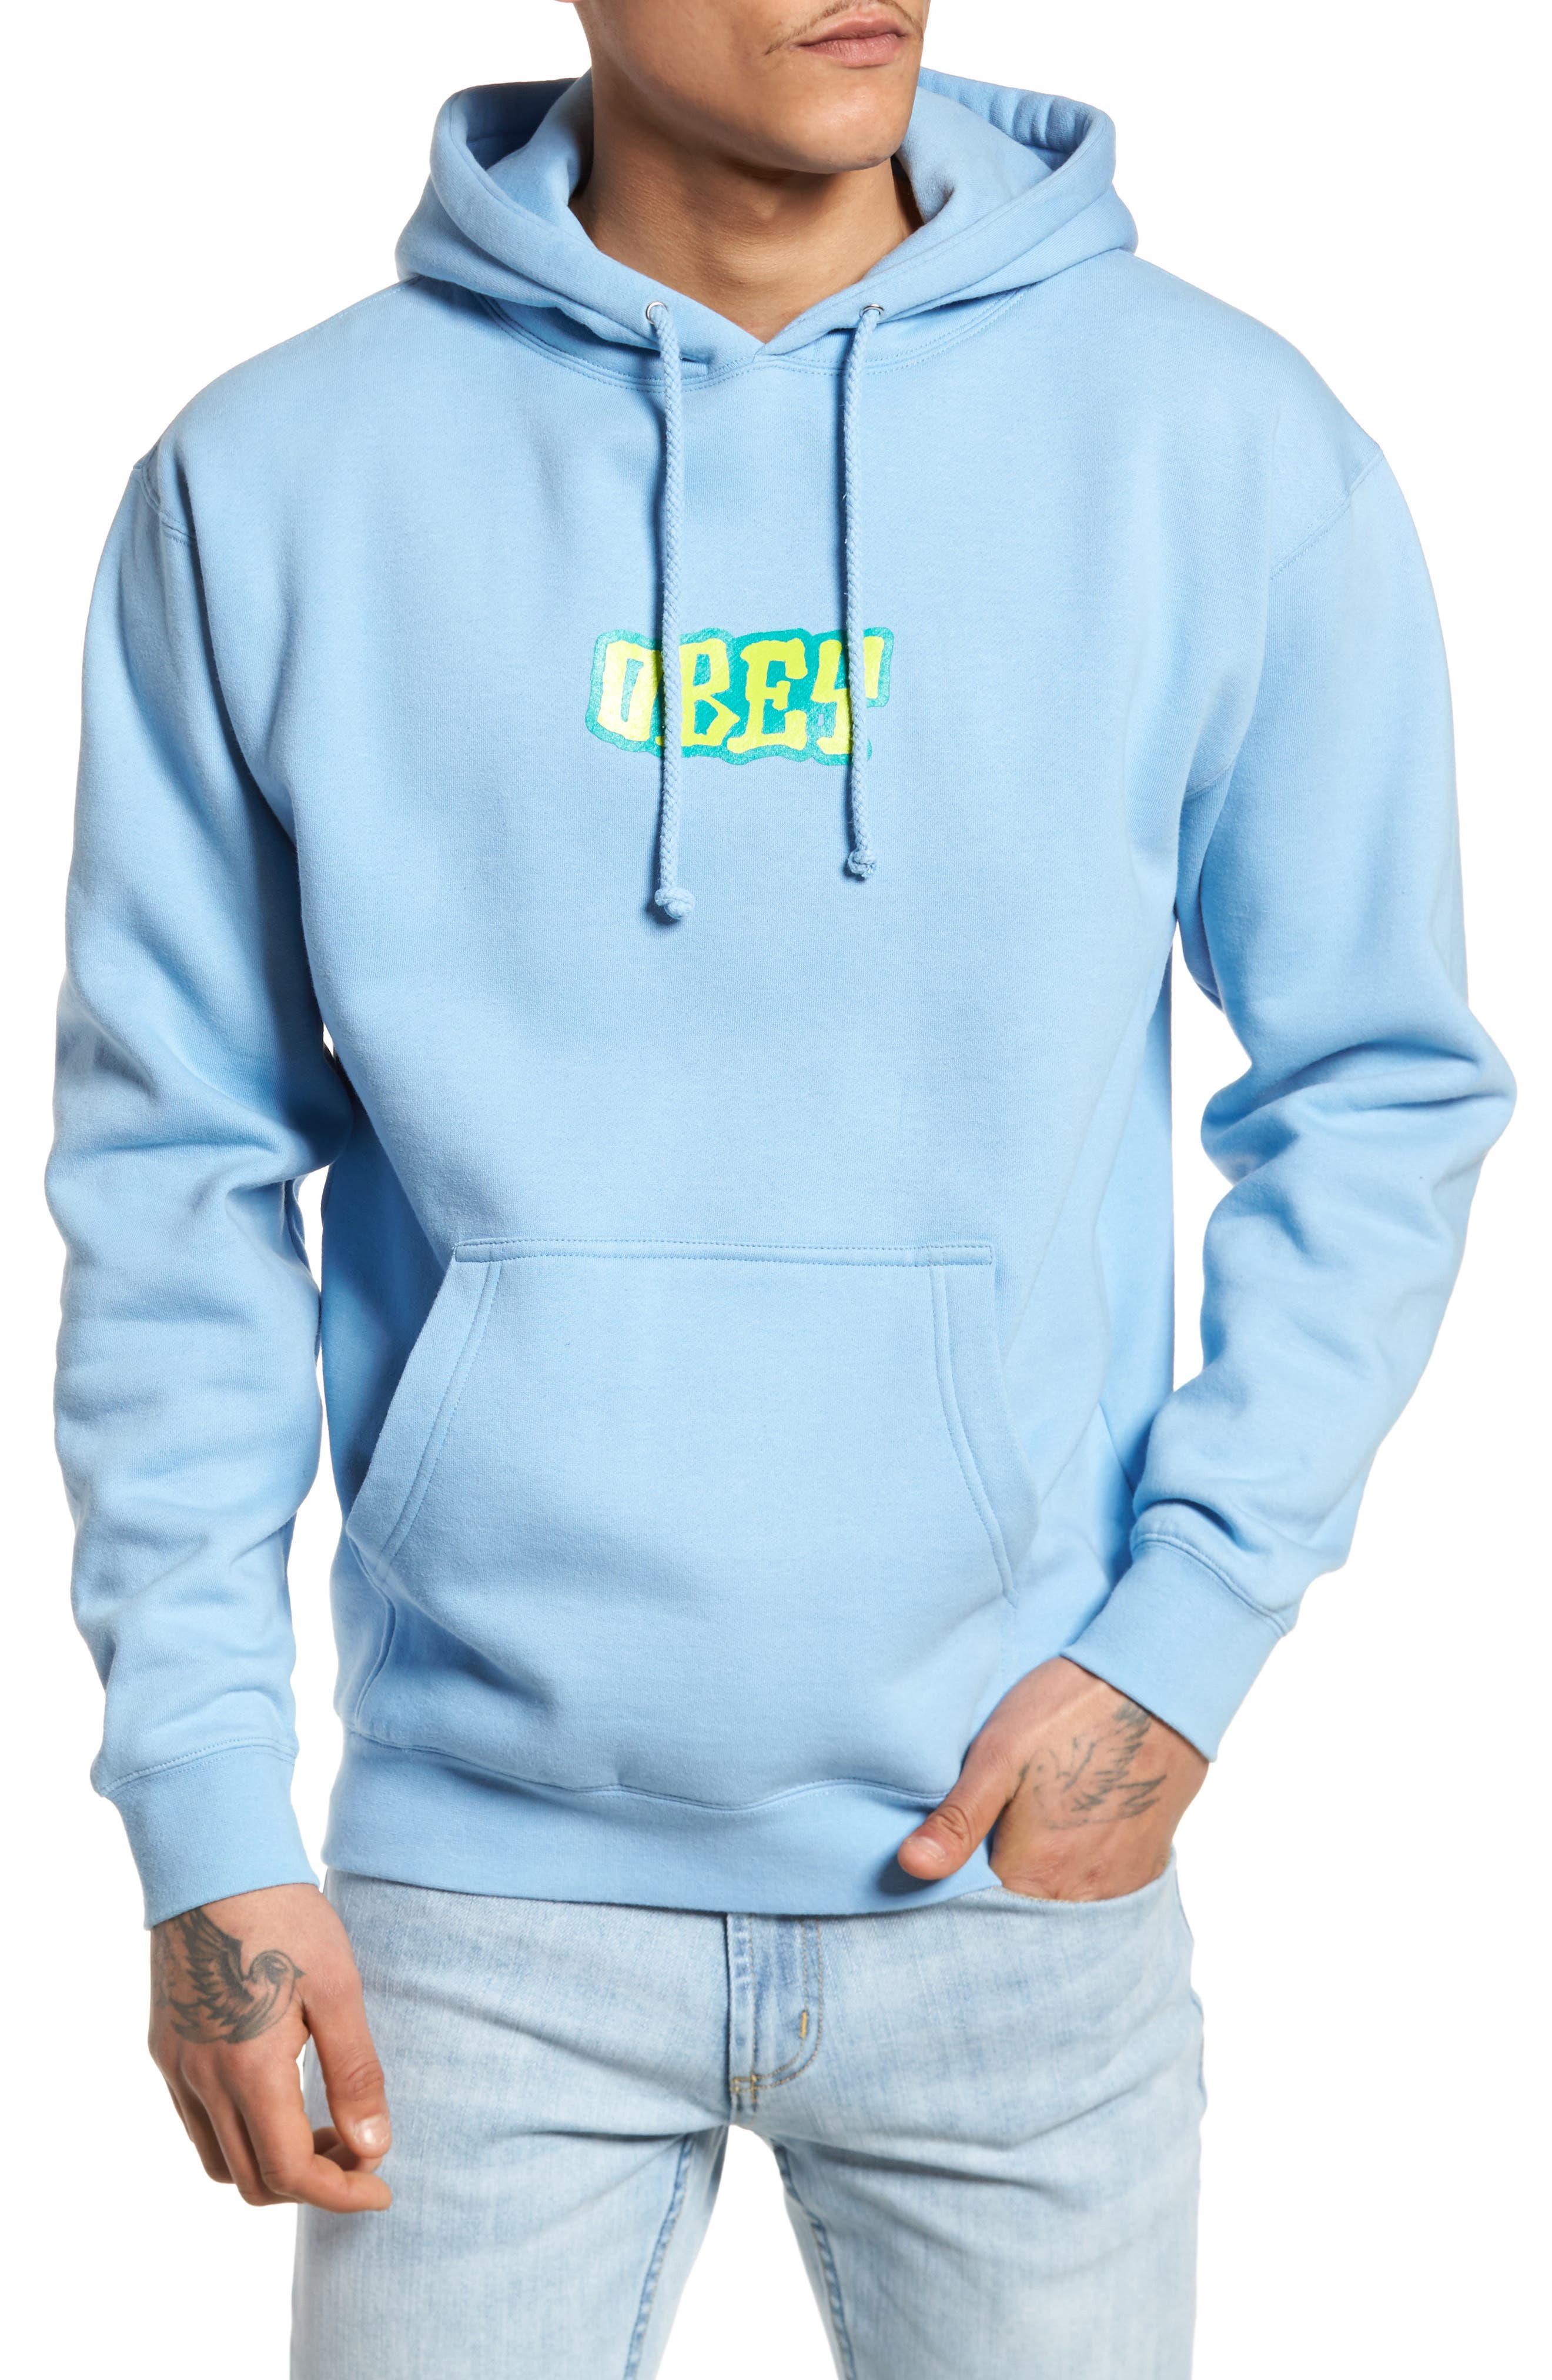 Better Days Hoodie,                         Main,                         color, Powder Blue